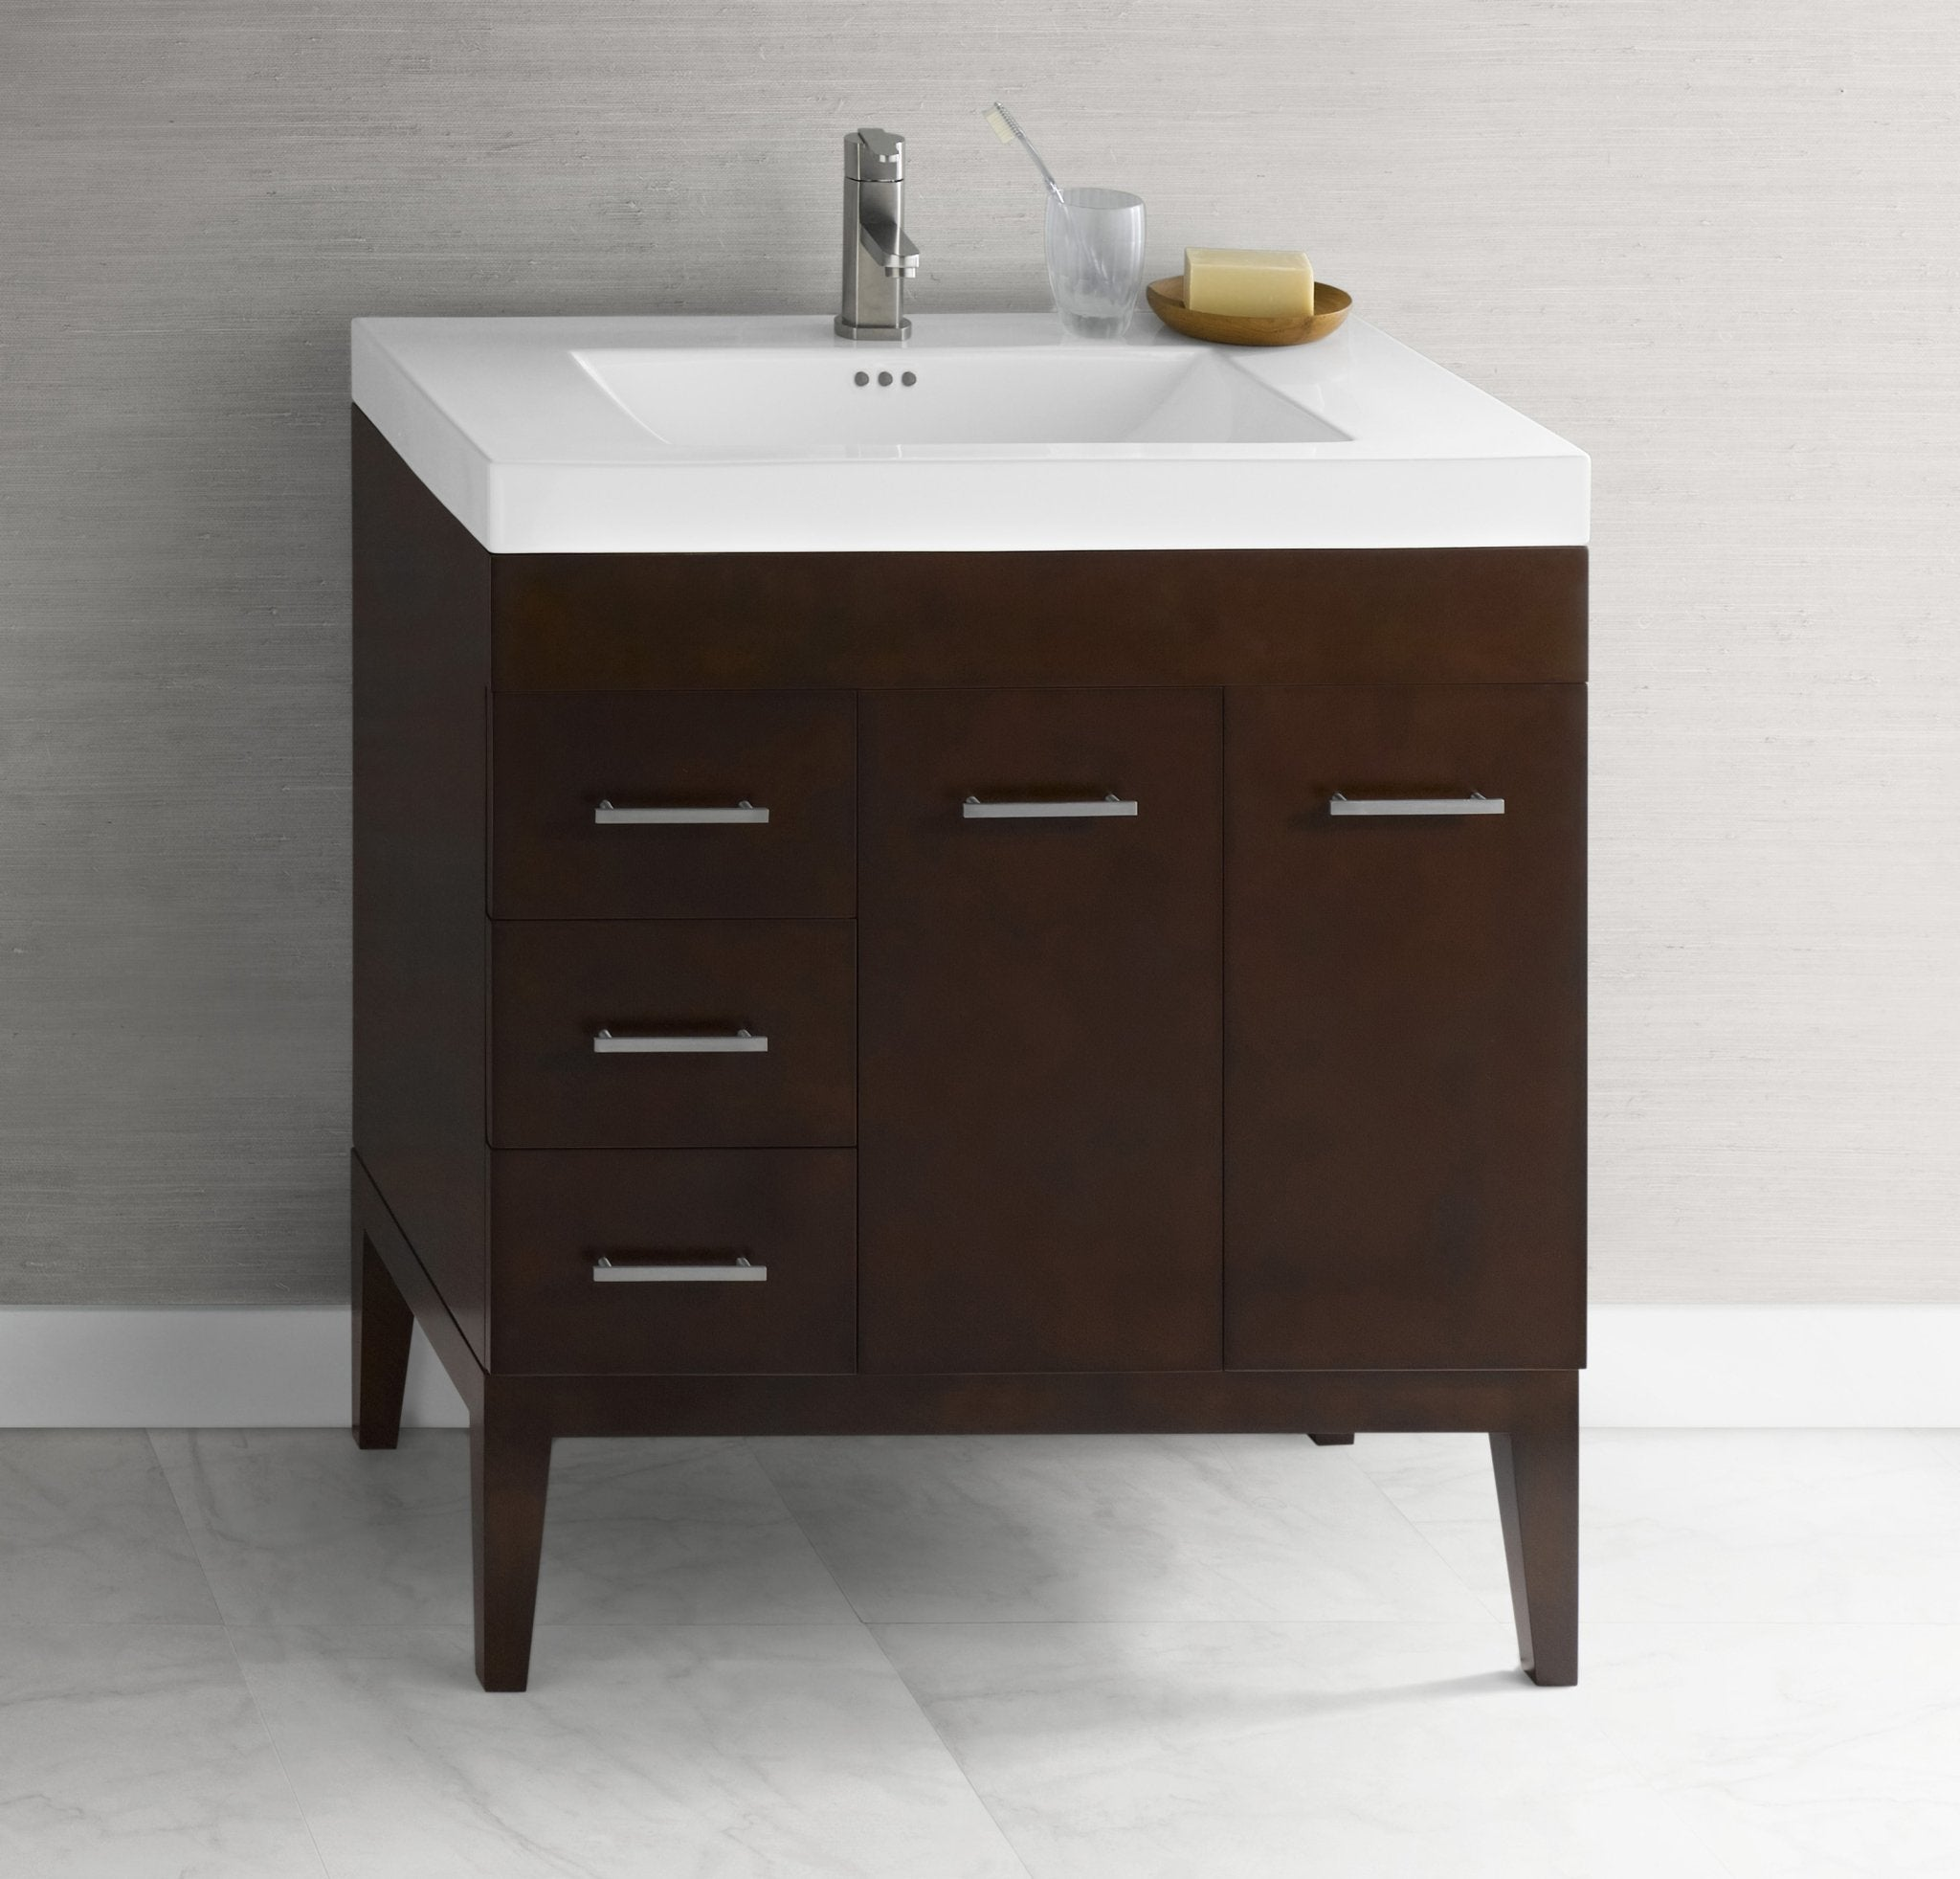 without highgrove bathroom timber top wall eden cabinet vanity mount